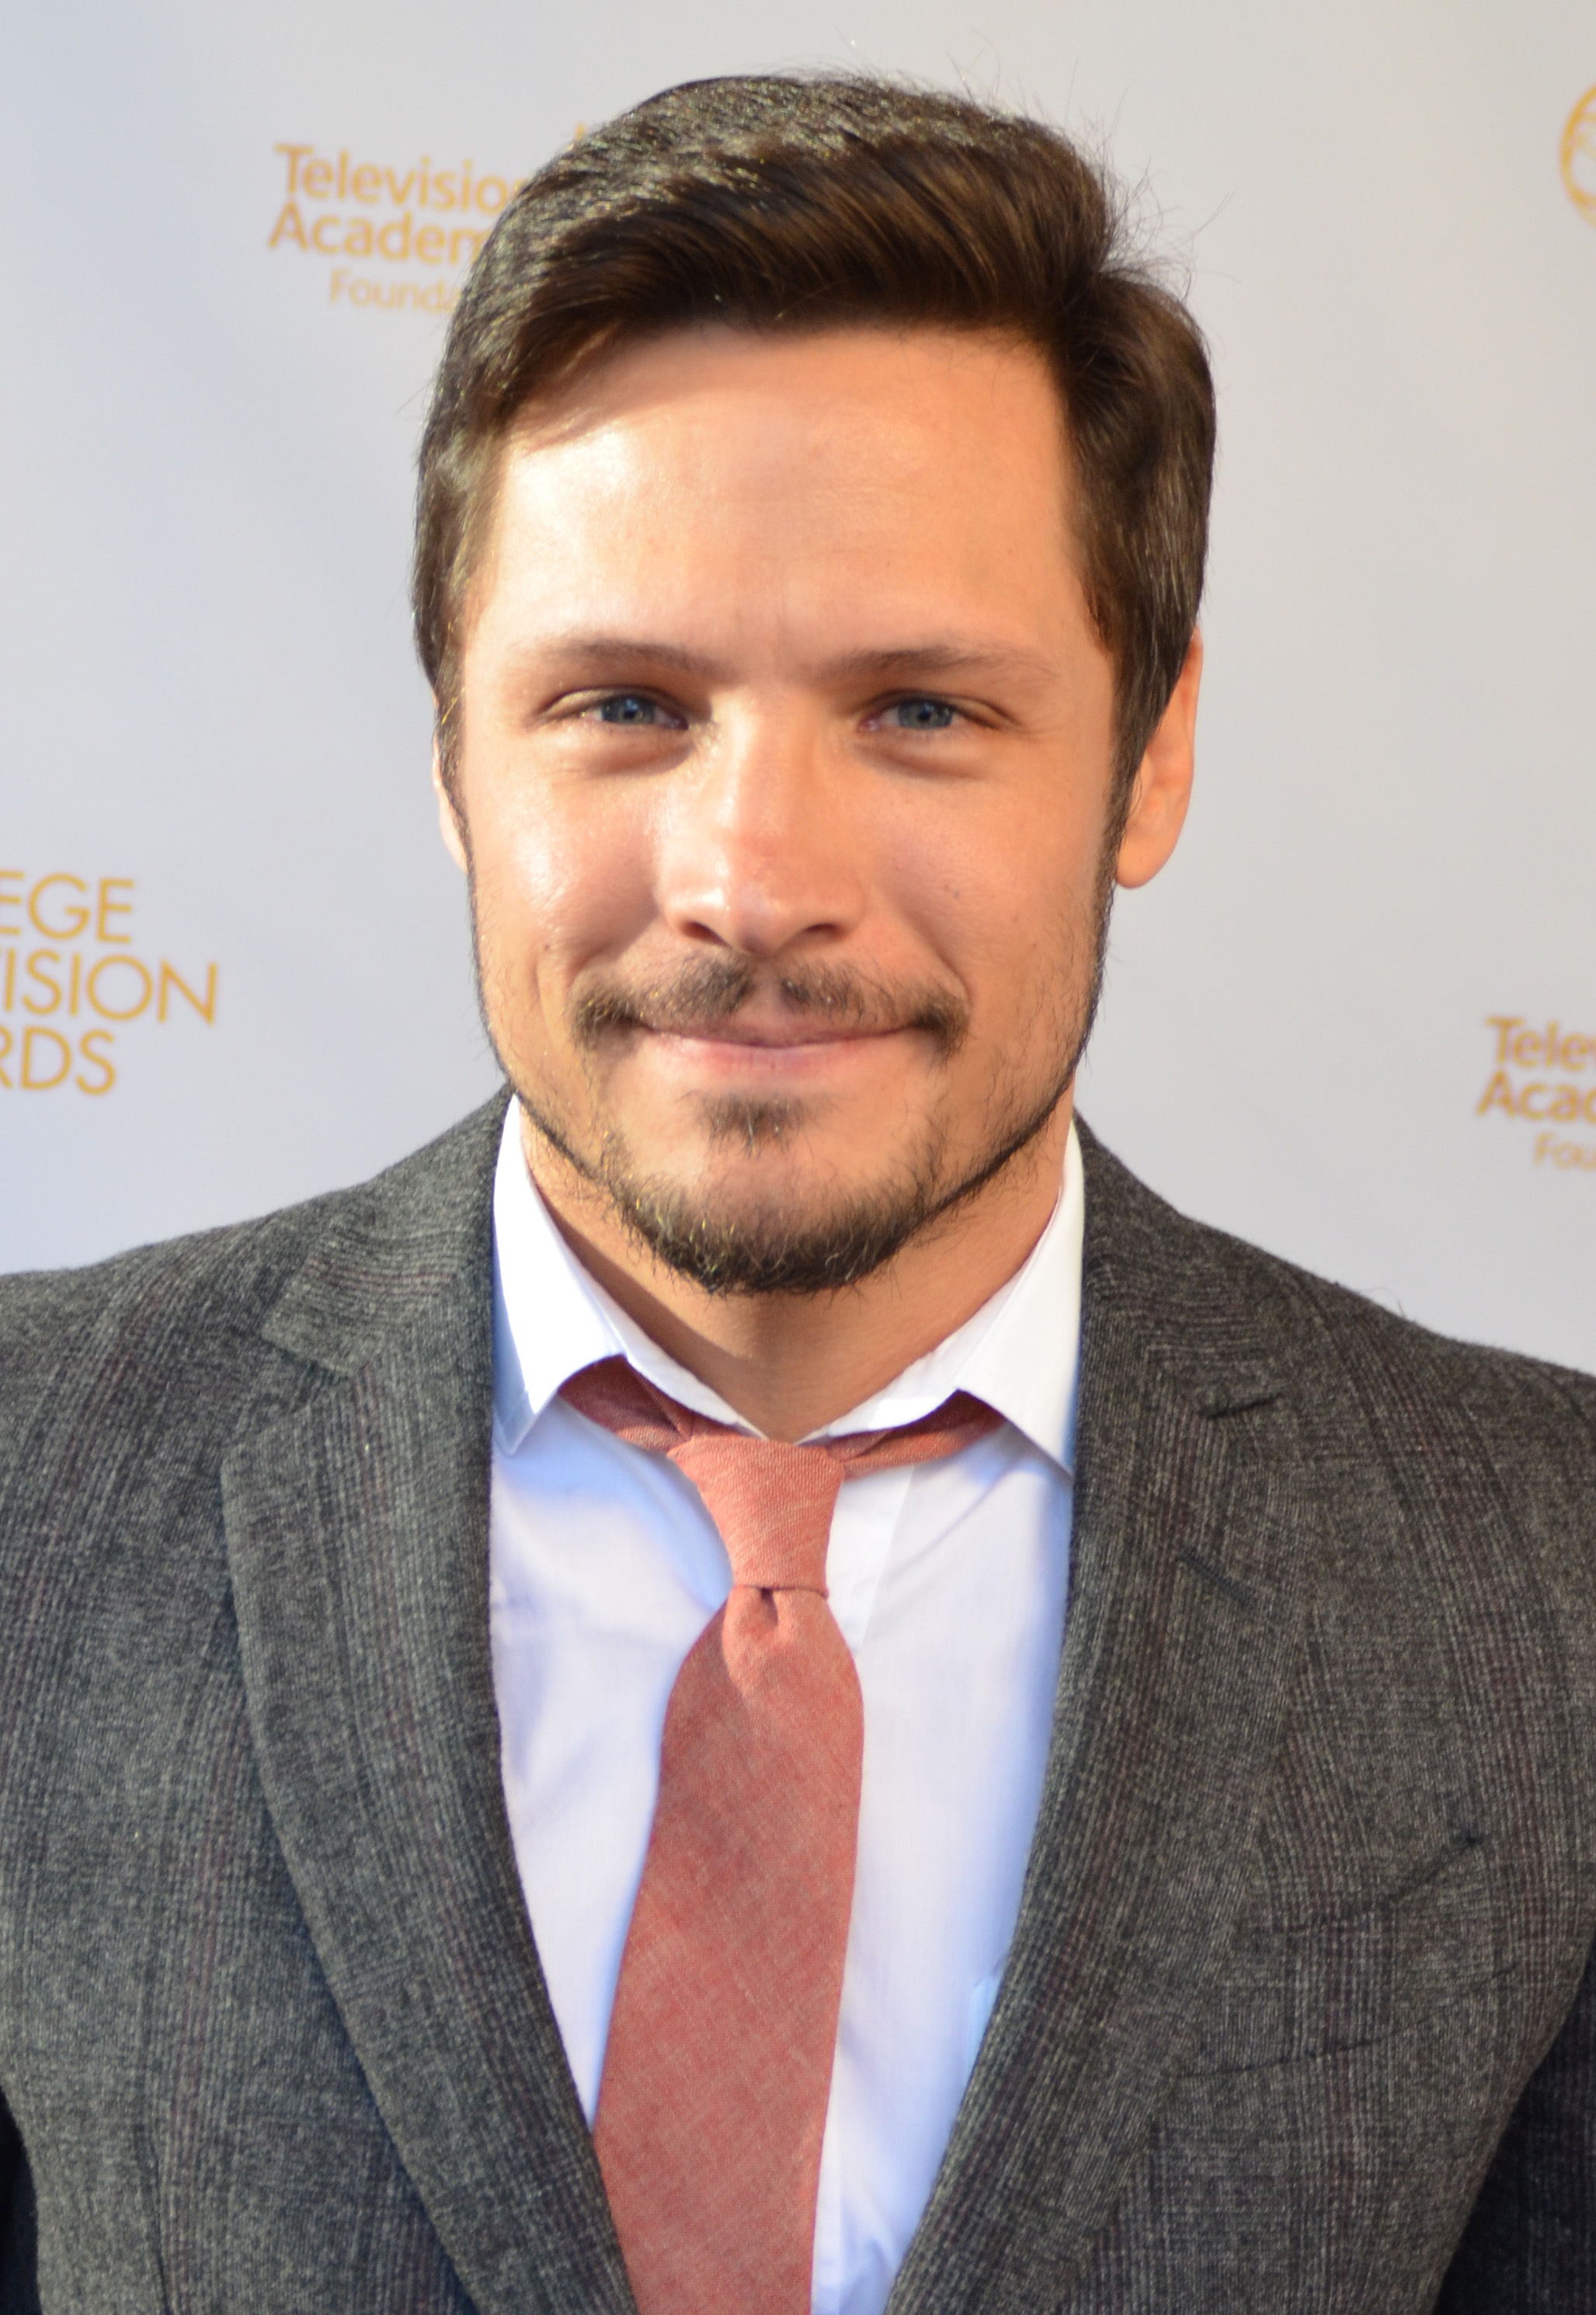 The 39-year old son of father Joseph A. Wechsler and mother Janet Ruth Wechsler, 170 cm tall Nick Wechsler in 2018 photo